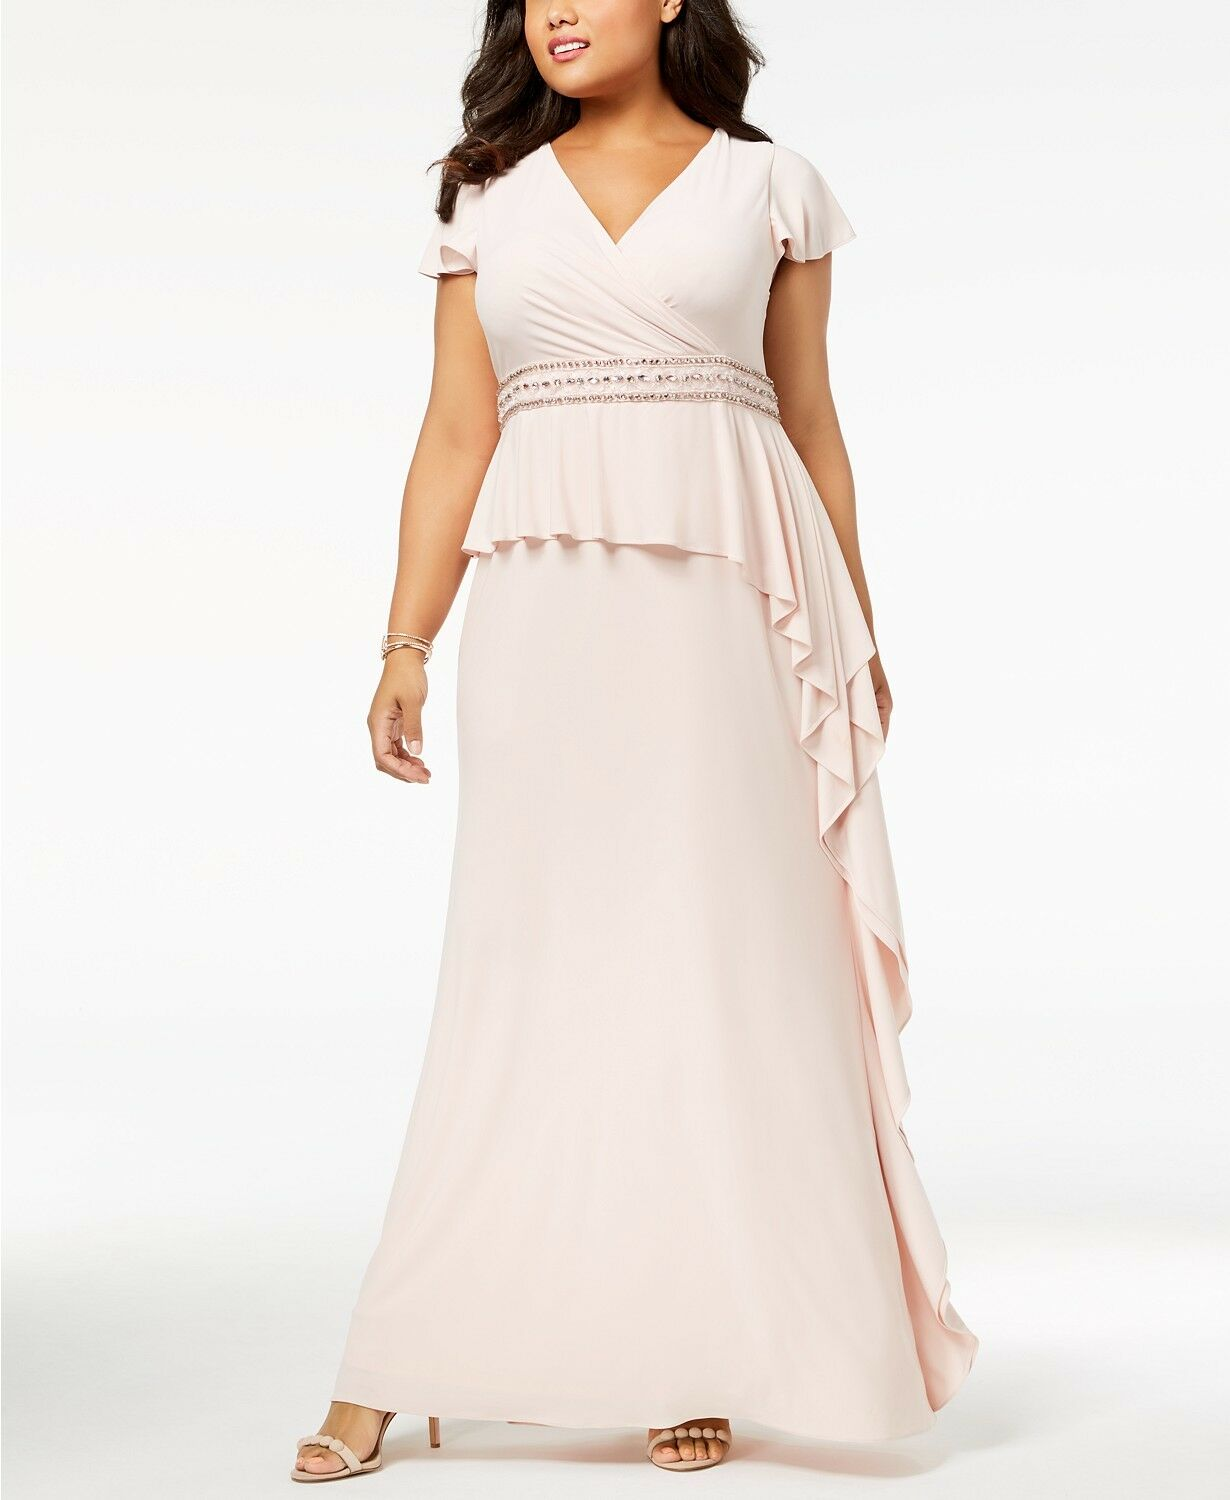 Adrianna Papell Plus Size Ruffled Gown MSRP  229 Size 18W A 580 NEW